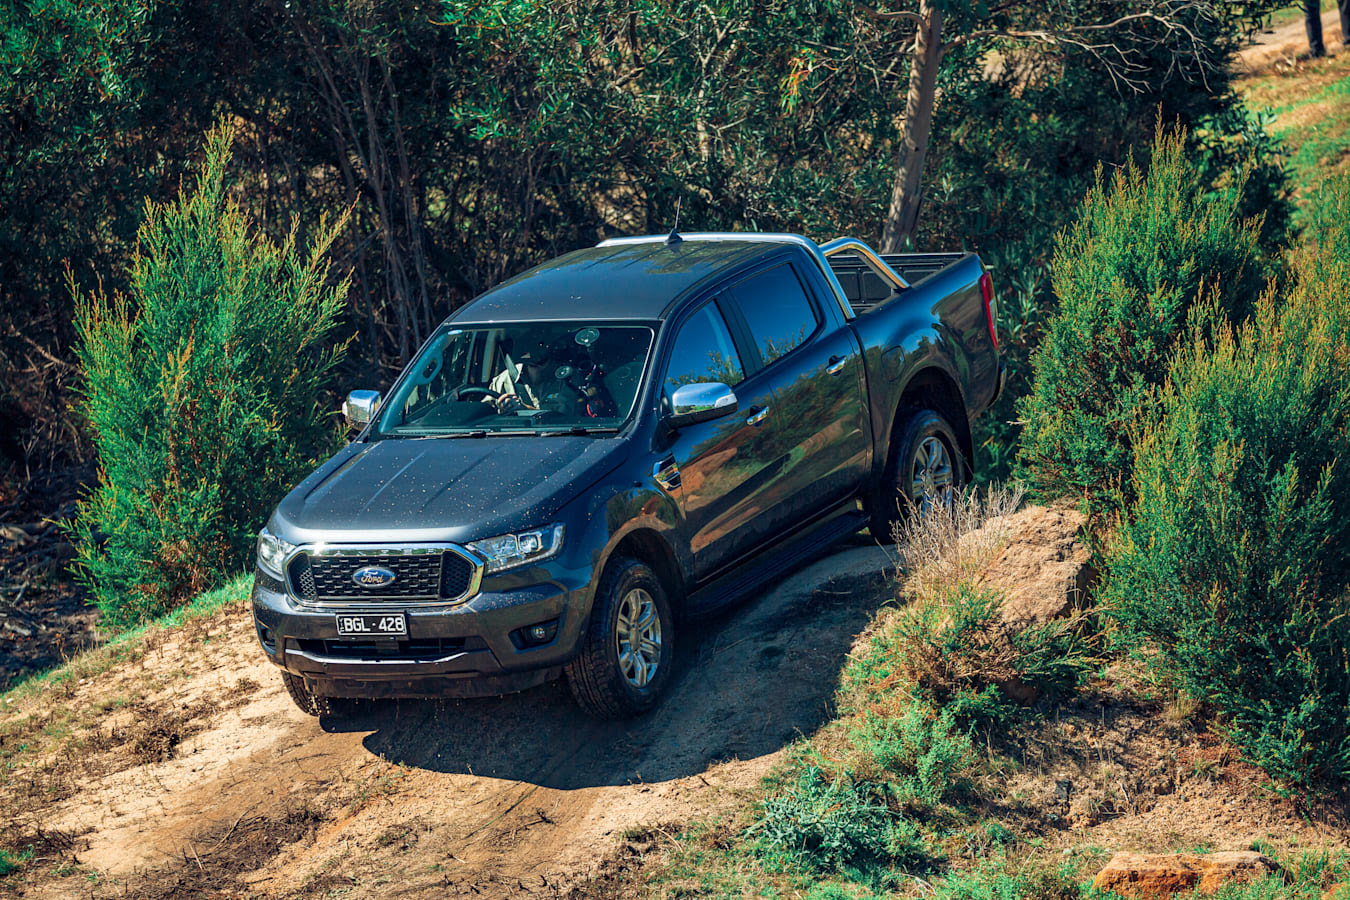 4 X 4 Australia Comparisons 2021 May 21 Ford Ranger XLT Ground Clearance